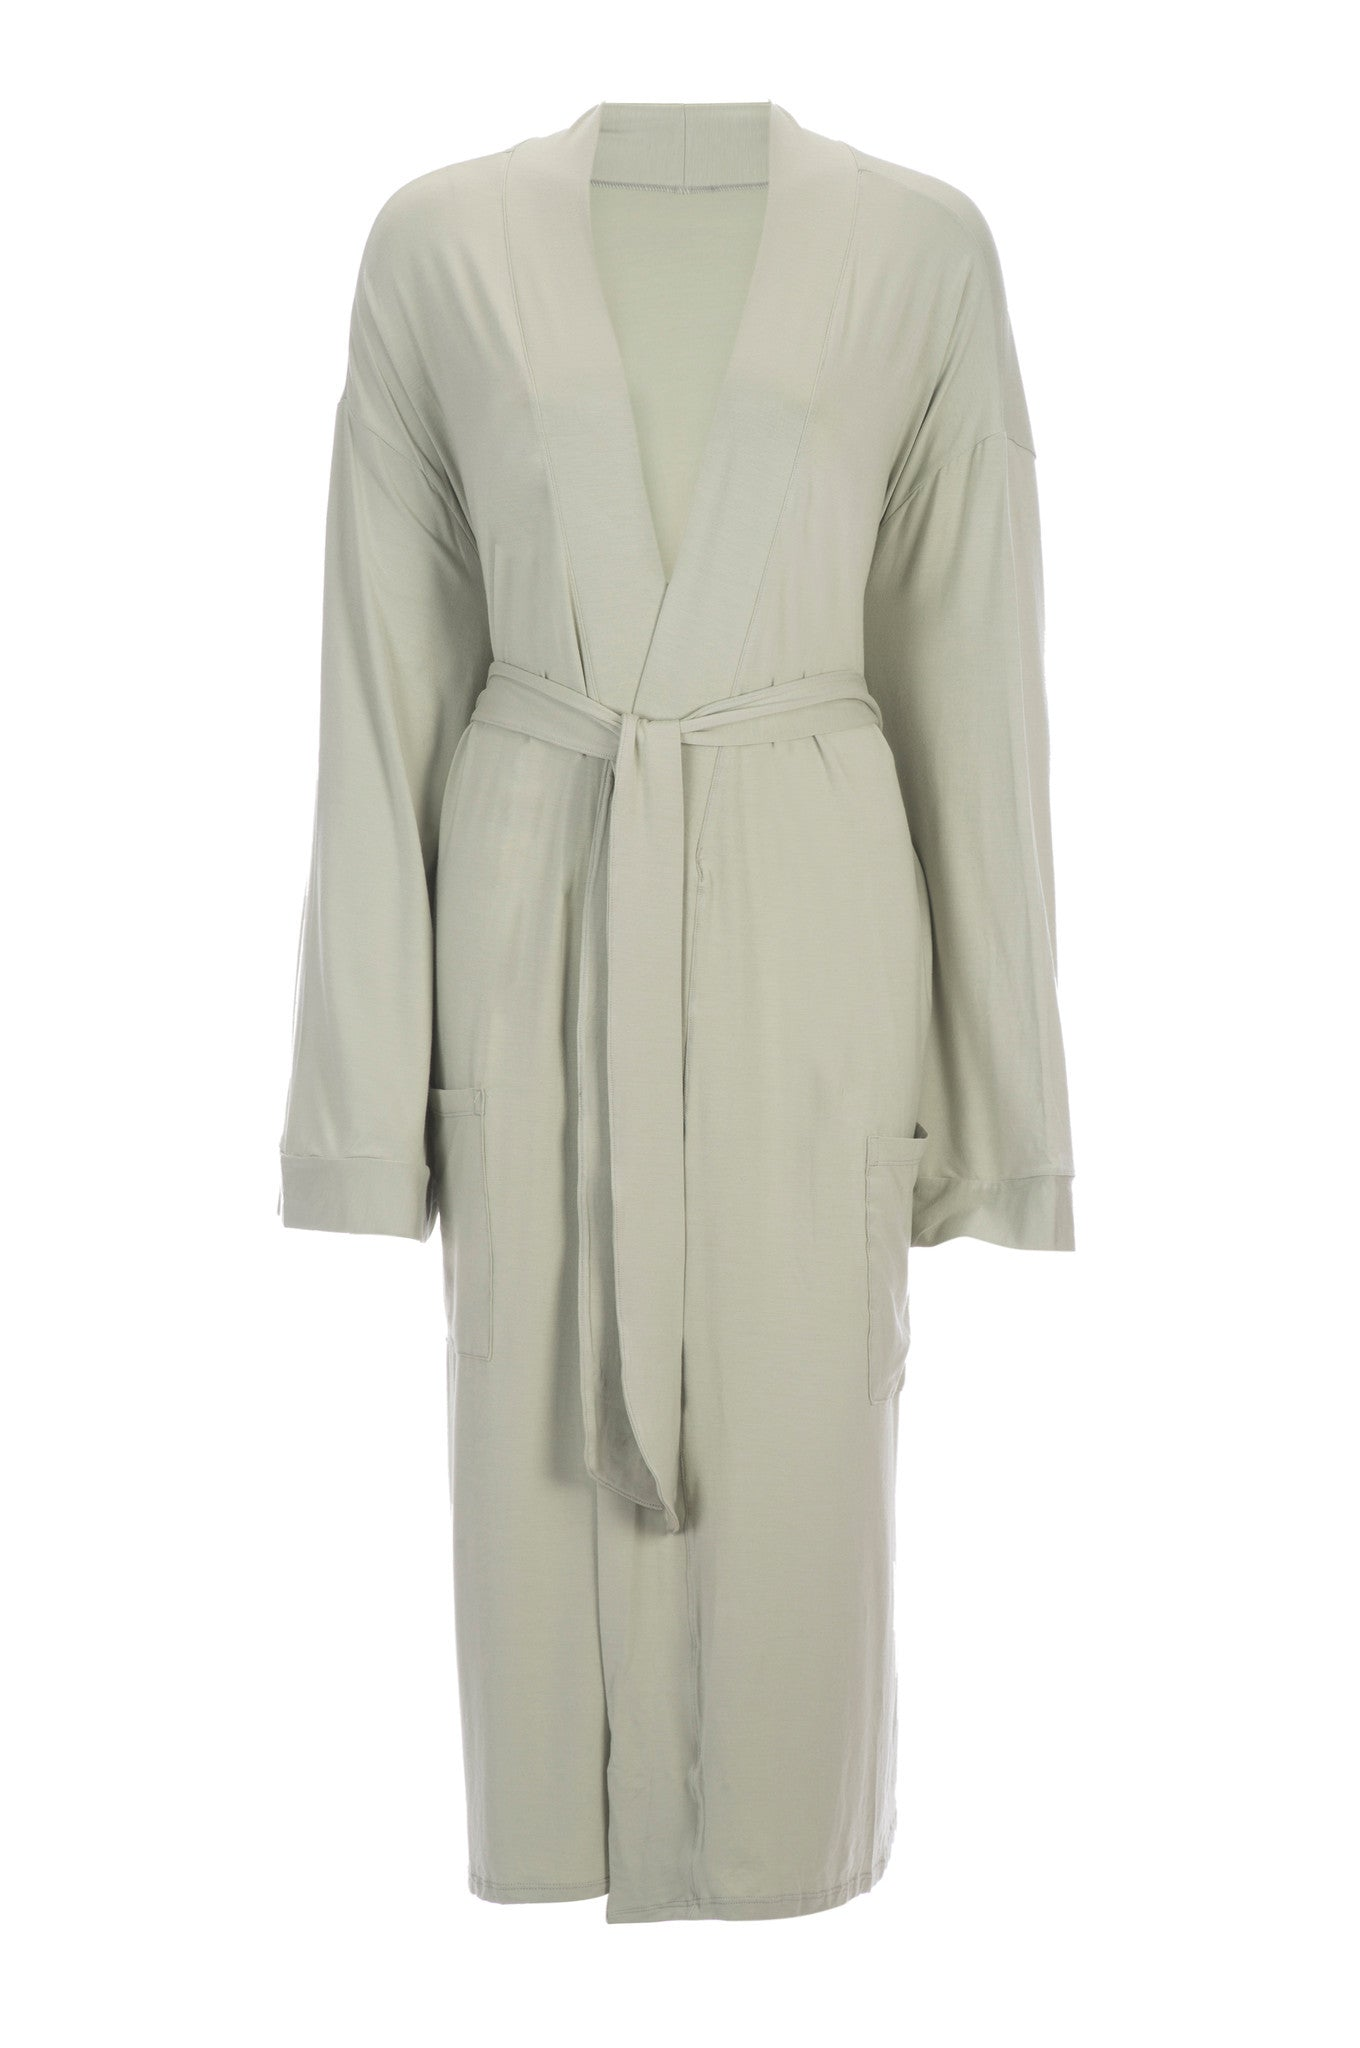 da55809f0d Bamboo Viscose Robe in Tea Green-Bathrobes-Alan Decor